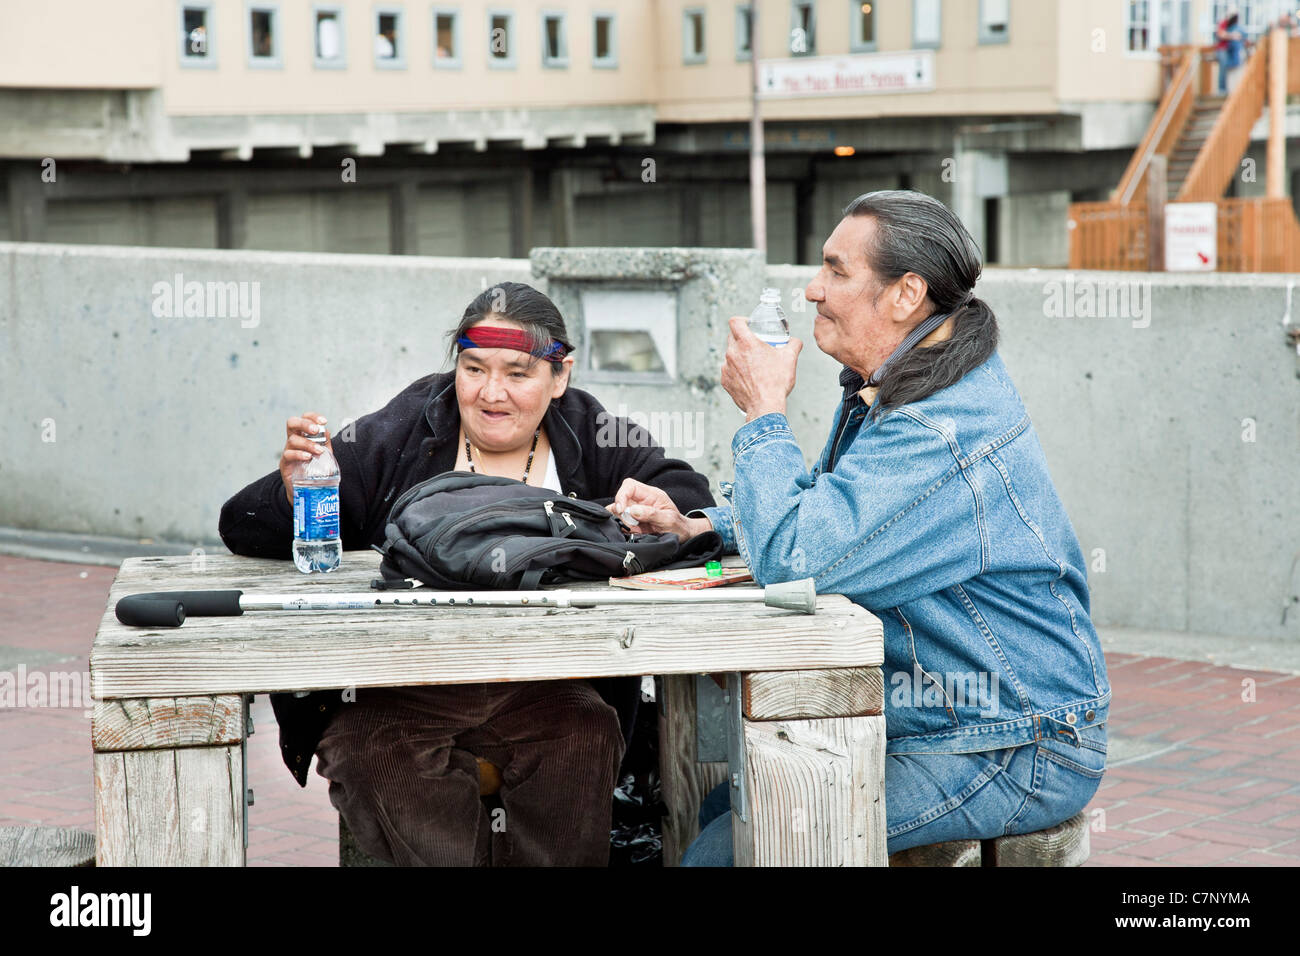 stoic genial senior native American Indian couple take a break with bottled water at rough wooden table in Seattle - Stock Image